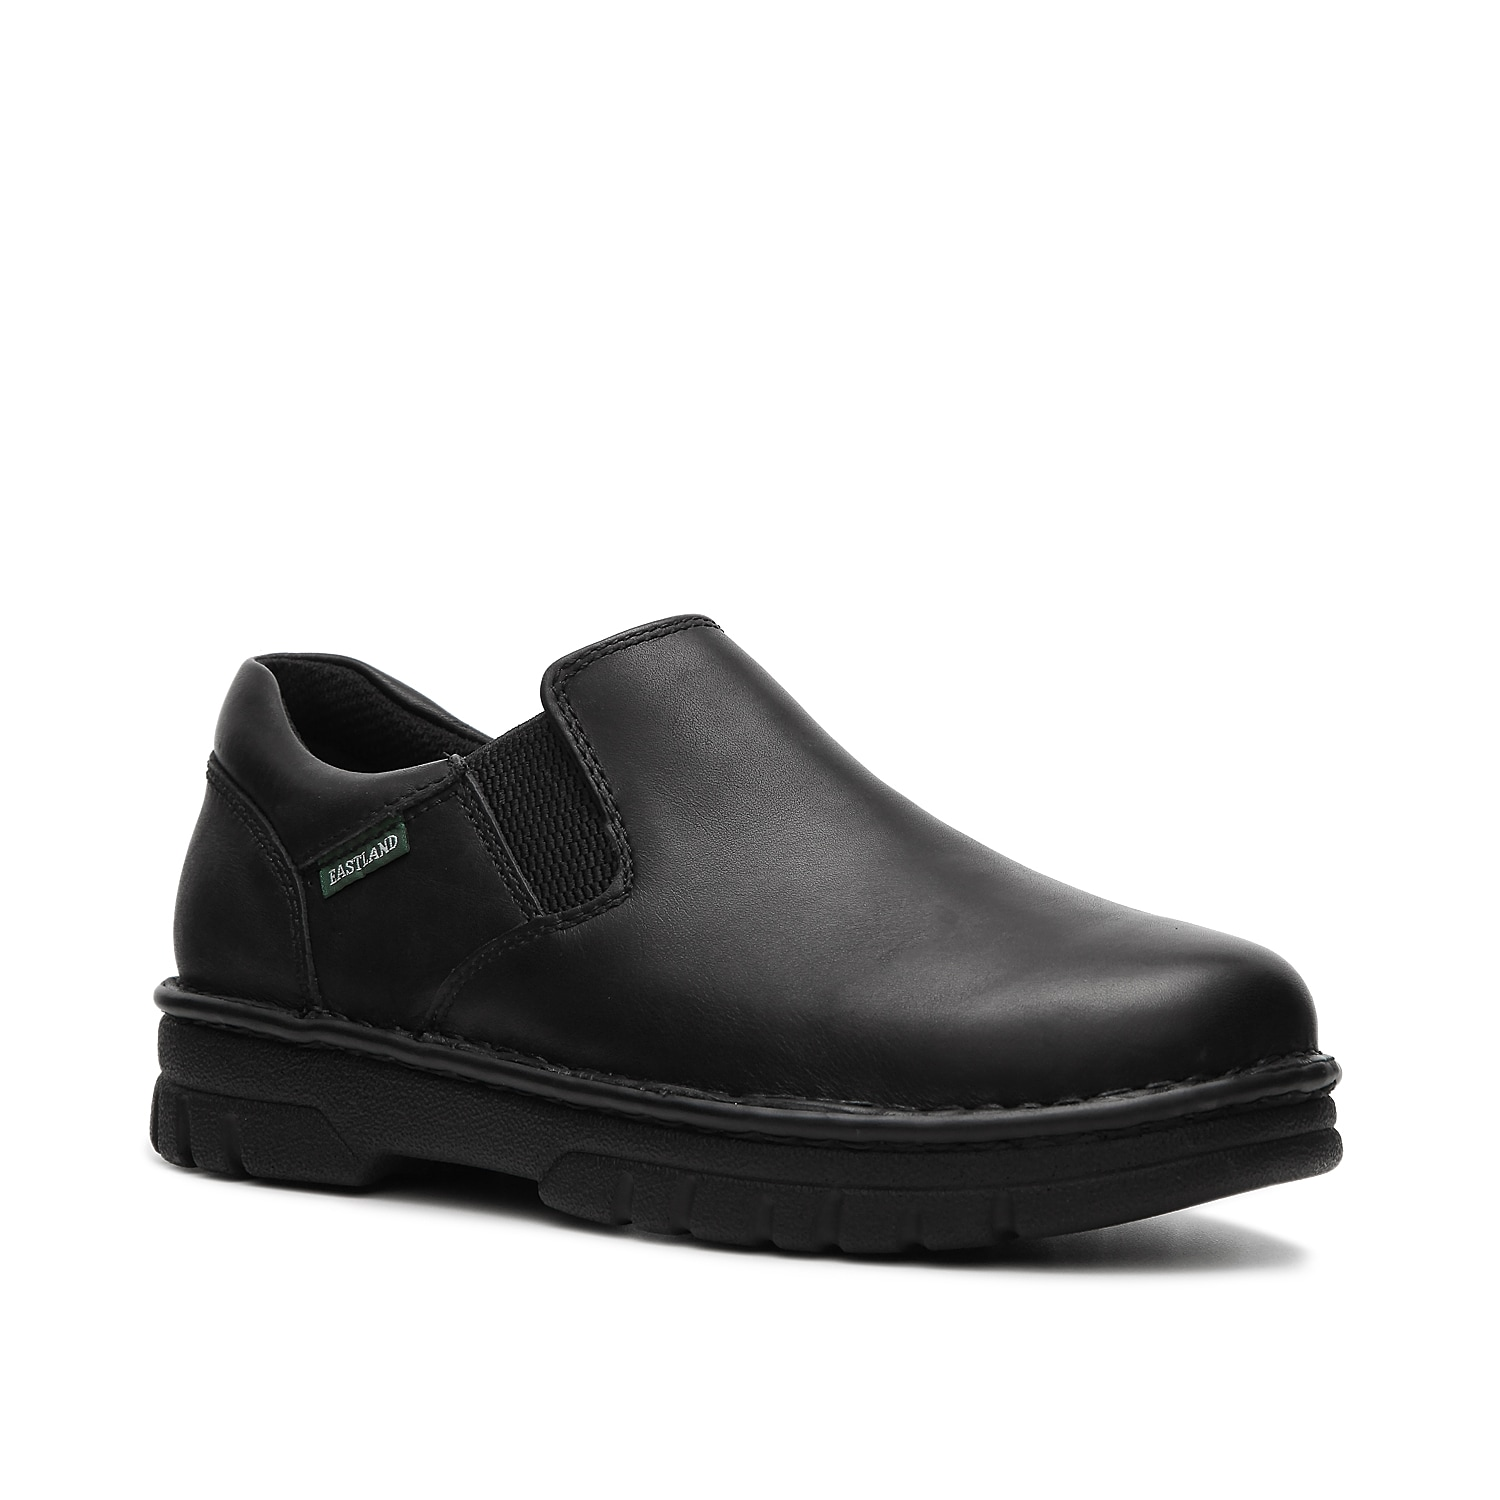 Simple and versatile, the Newport from Eastland will get you from work to play with ease. Slip on this leather shoe with it's dual elastic panels and cushioned insole for all day comfort.